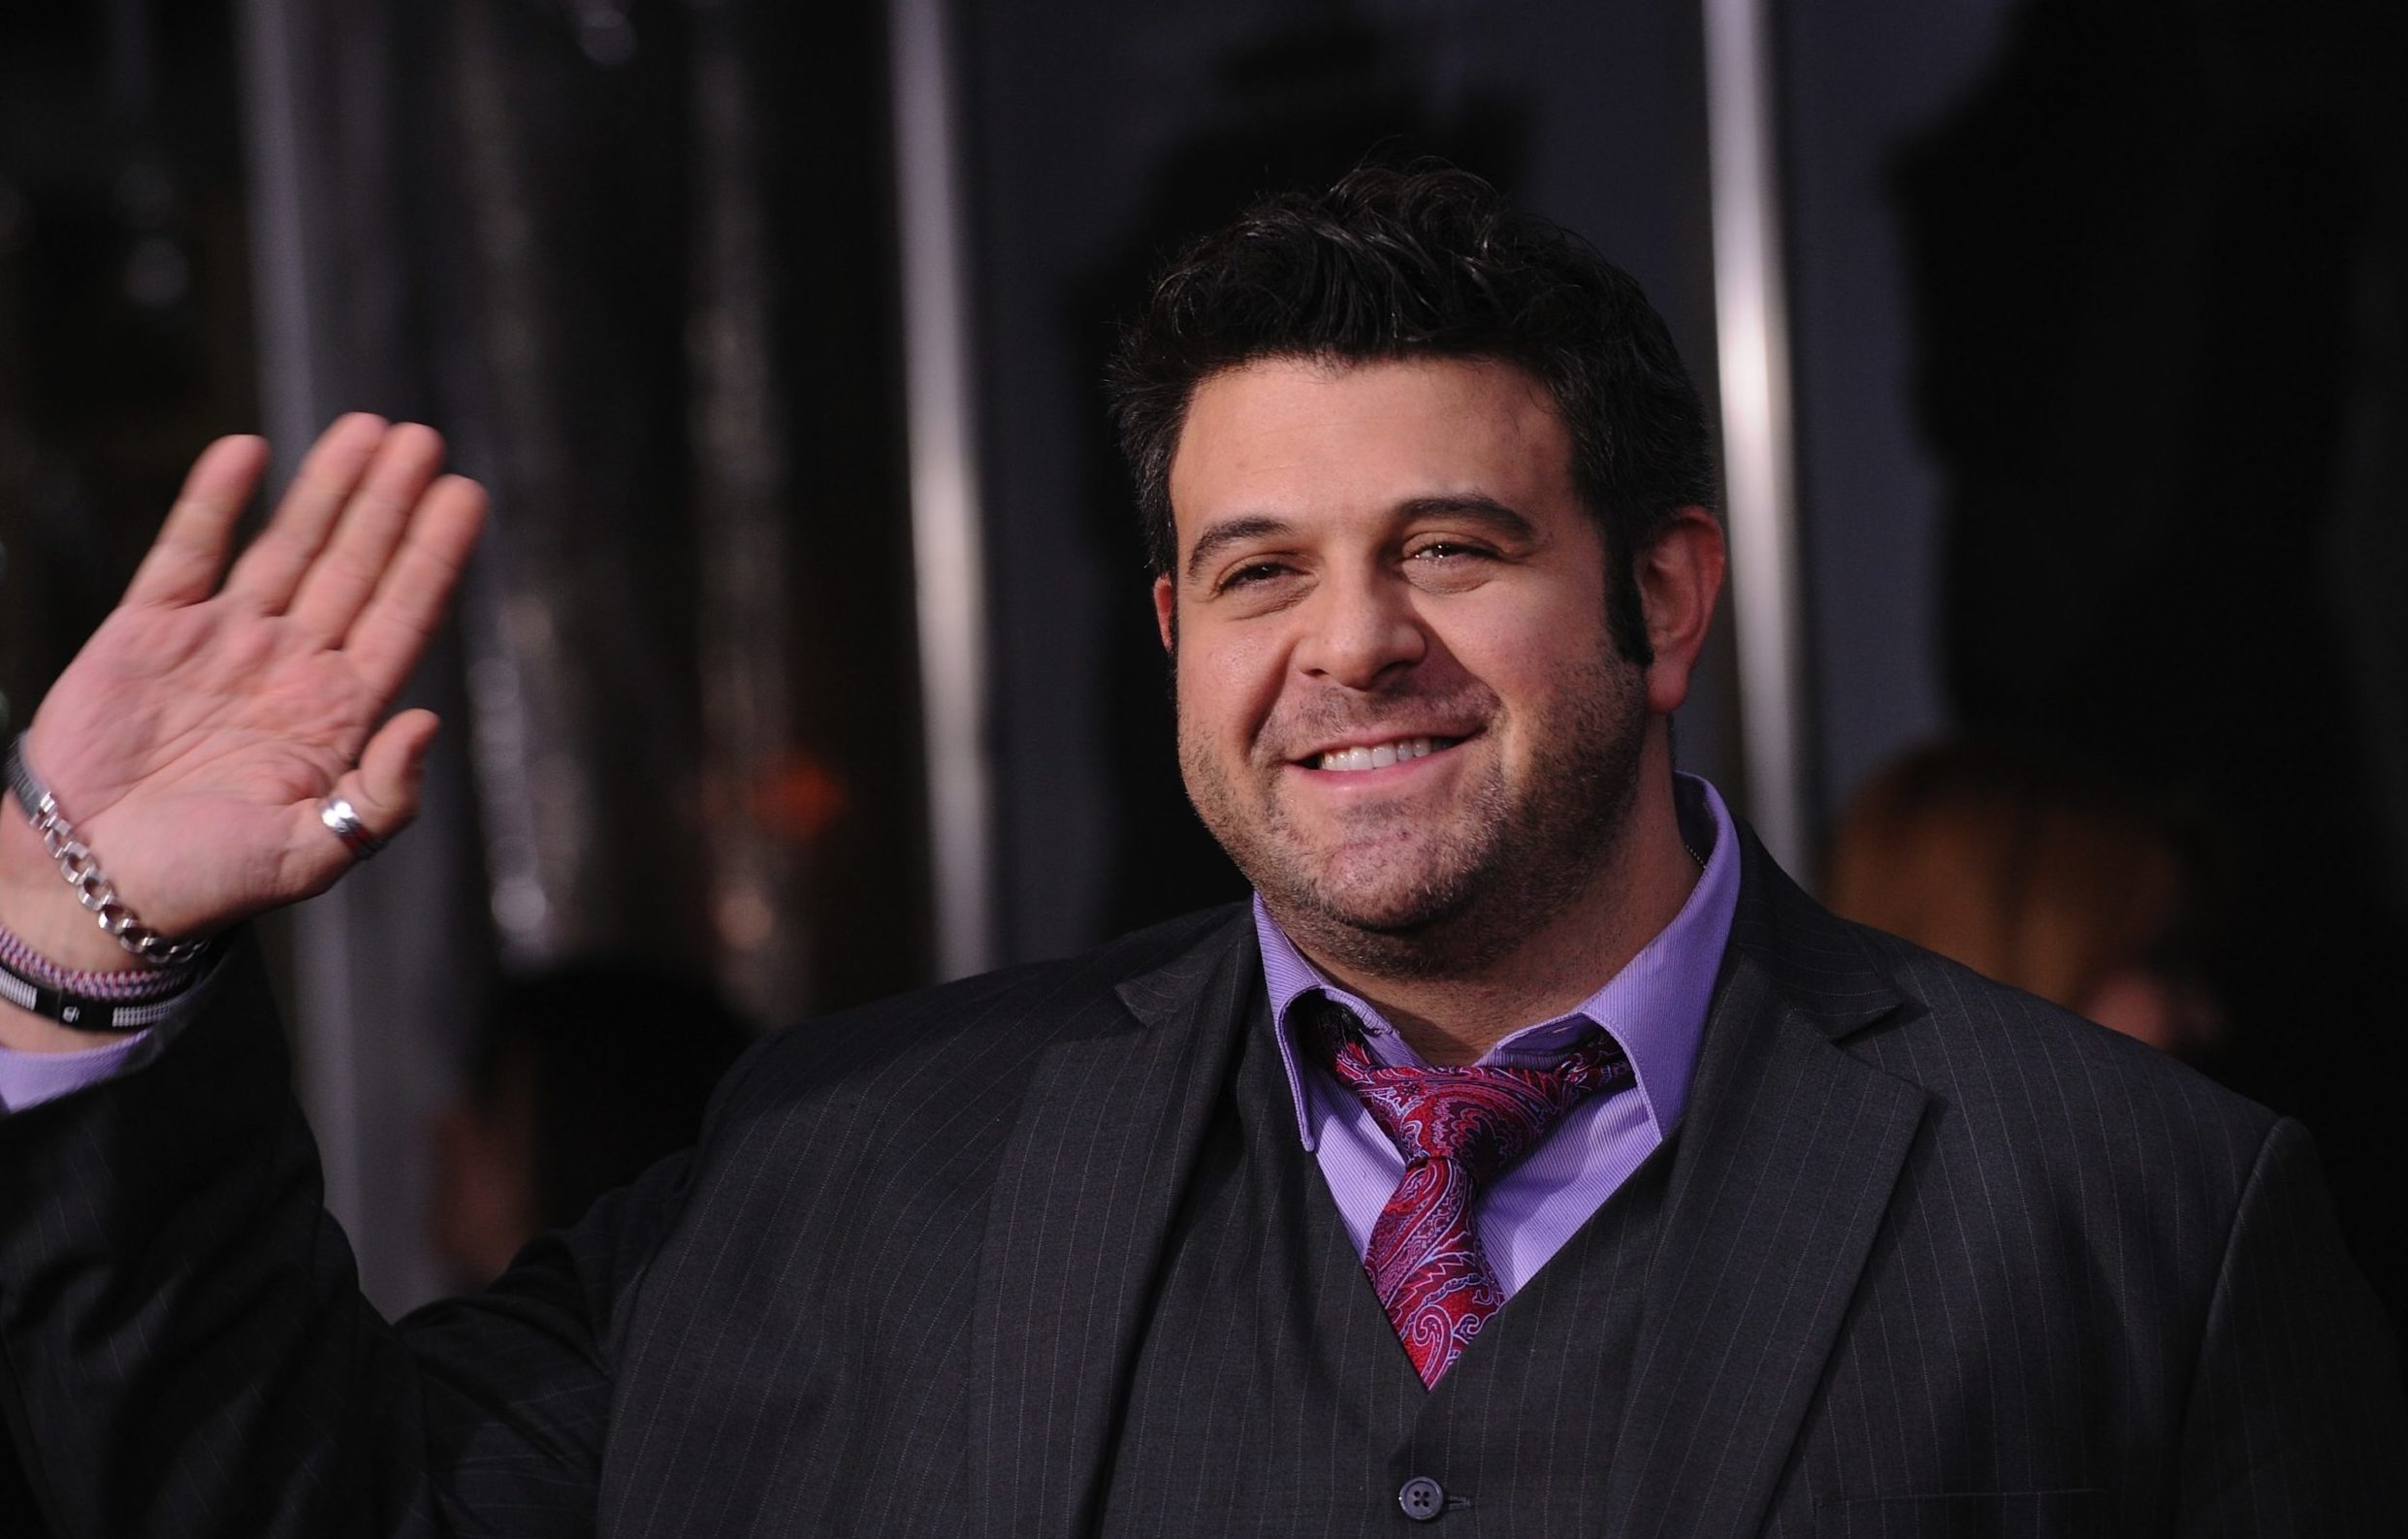 Adam Richman attending the New York Premiere of 'The Girl With the Dragon Tattoo' held at the Ziegfeld Theatre in New York City on December 14, 2011.